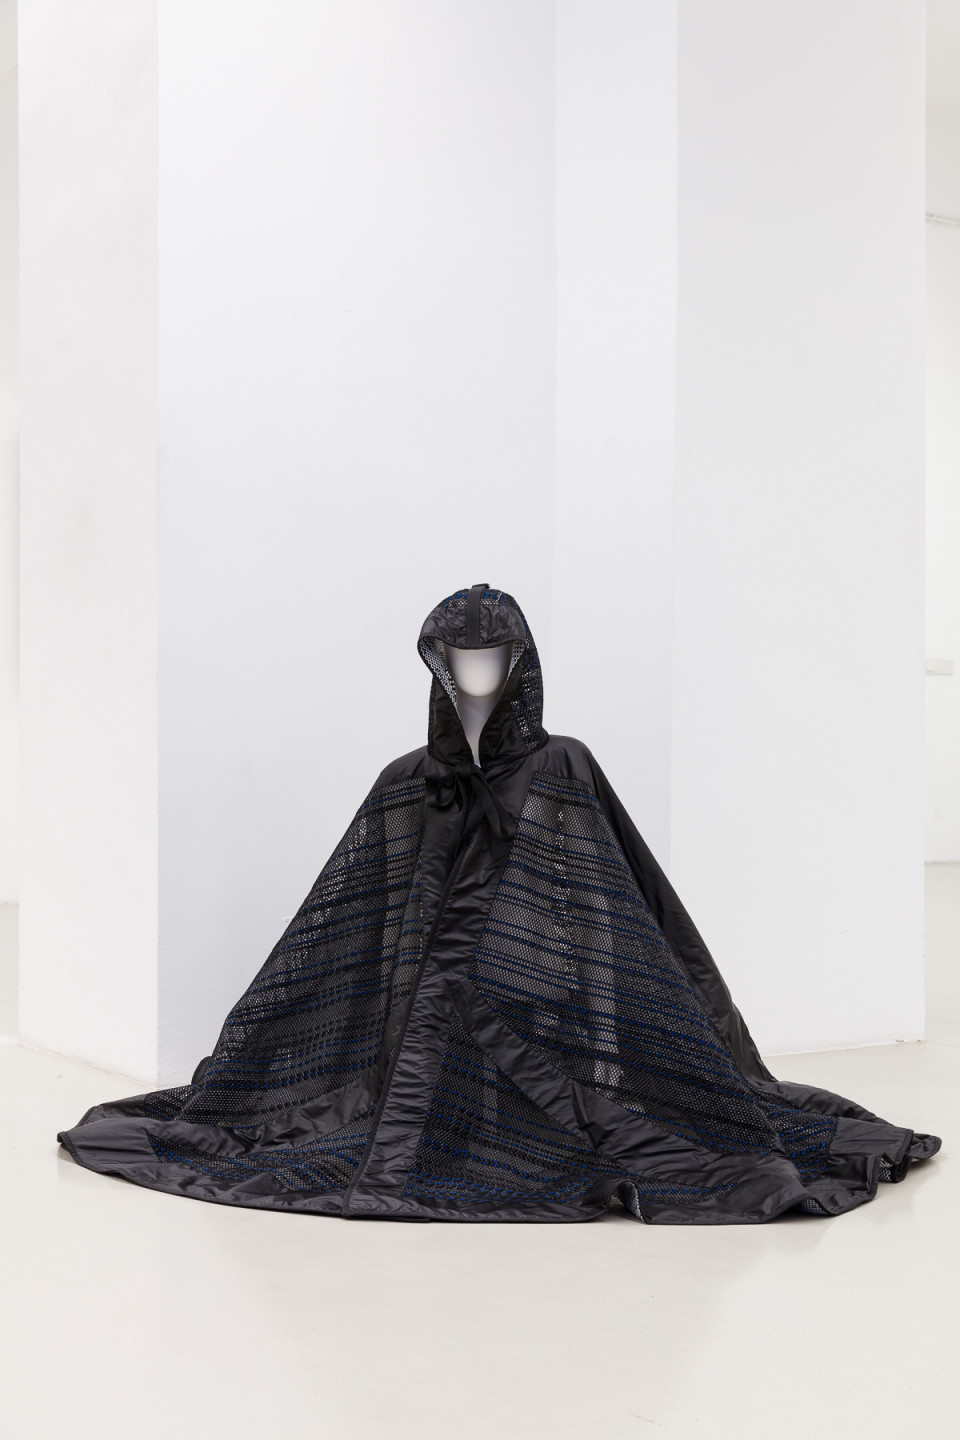 George Henry Longly Come. And. Creep, 2016 Ribbon and neoprene cape made in collaboration with James Long 110 x 190 x 110 cm 43 1/4 x 74 3/4 x 43 1/4 in